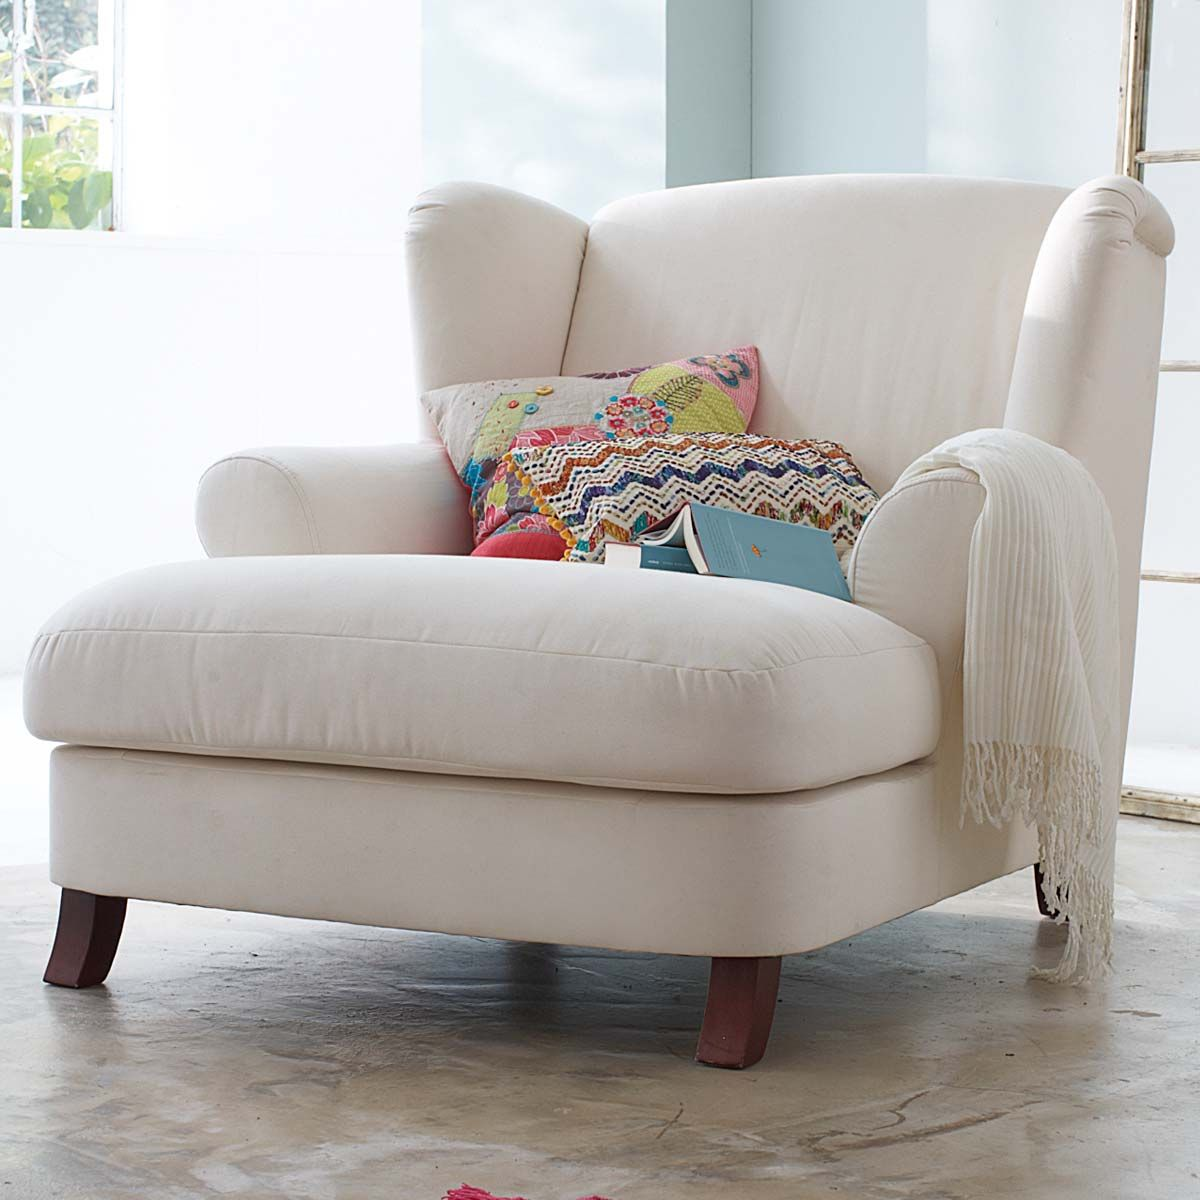 Dream Chair Via Somewhere North To Build A Home Pinterest Recliner Rockers And Babies